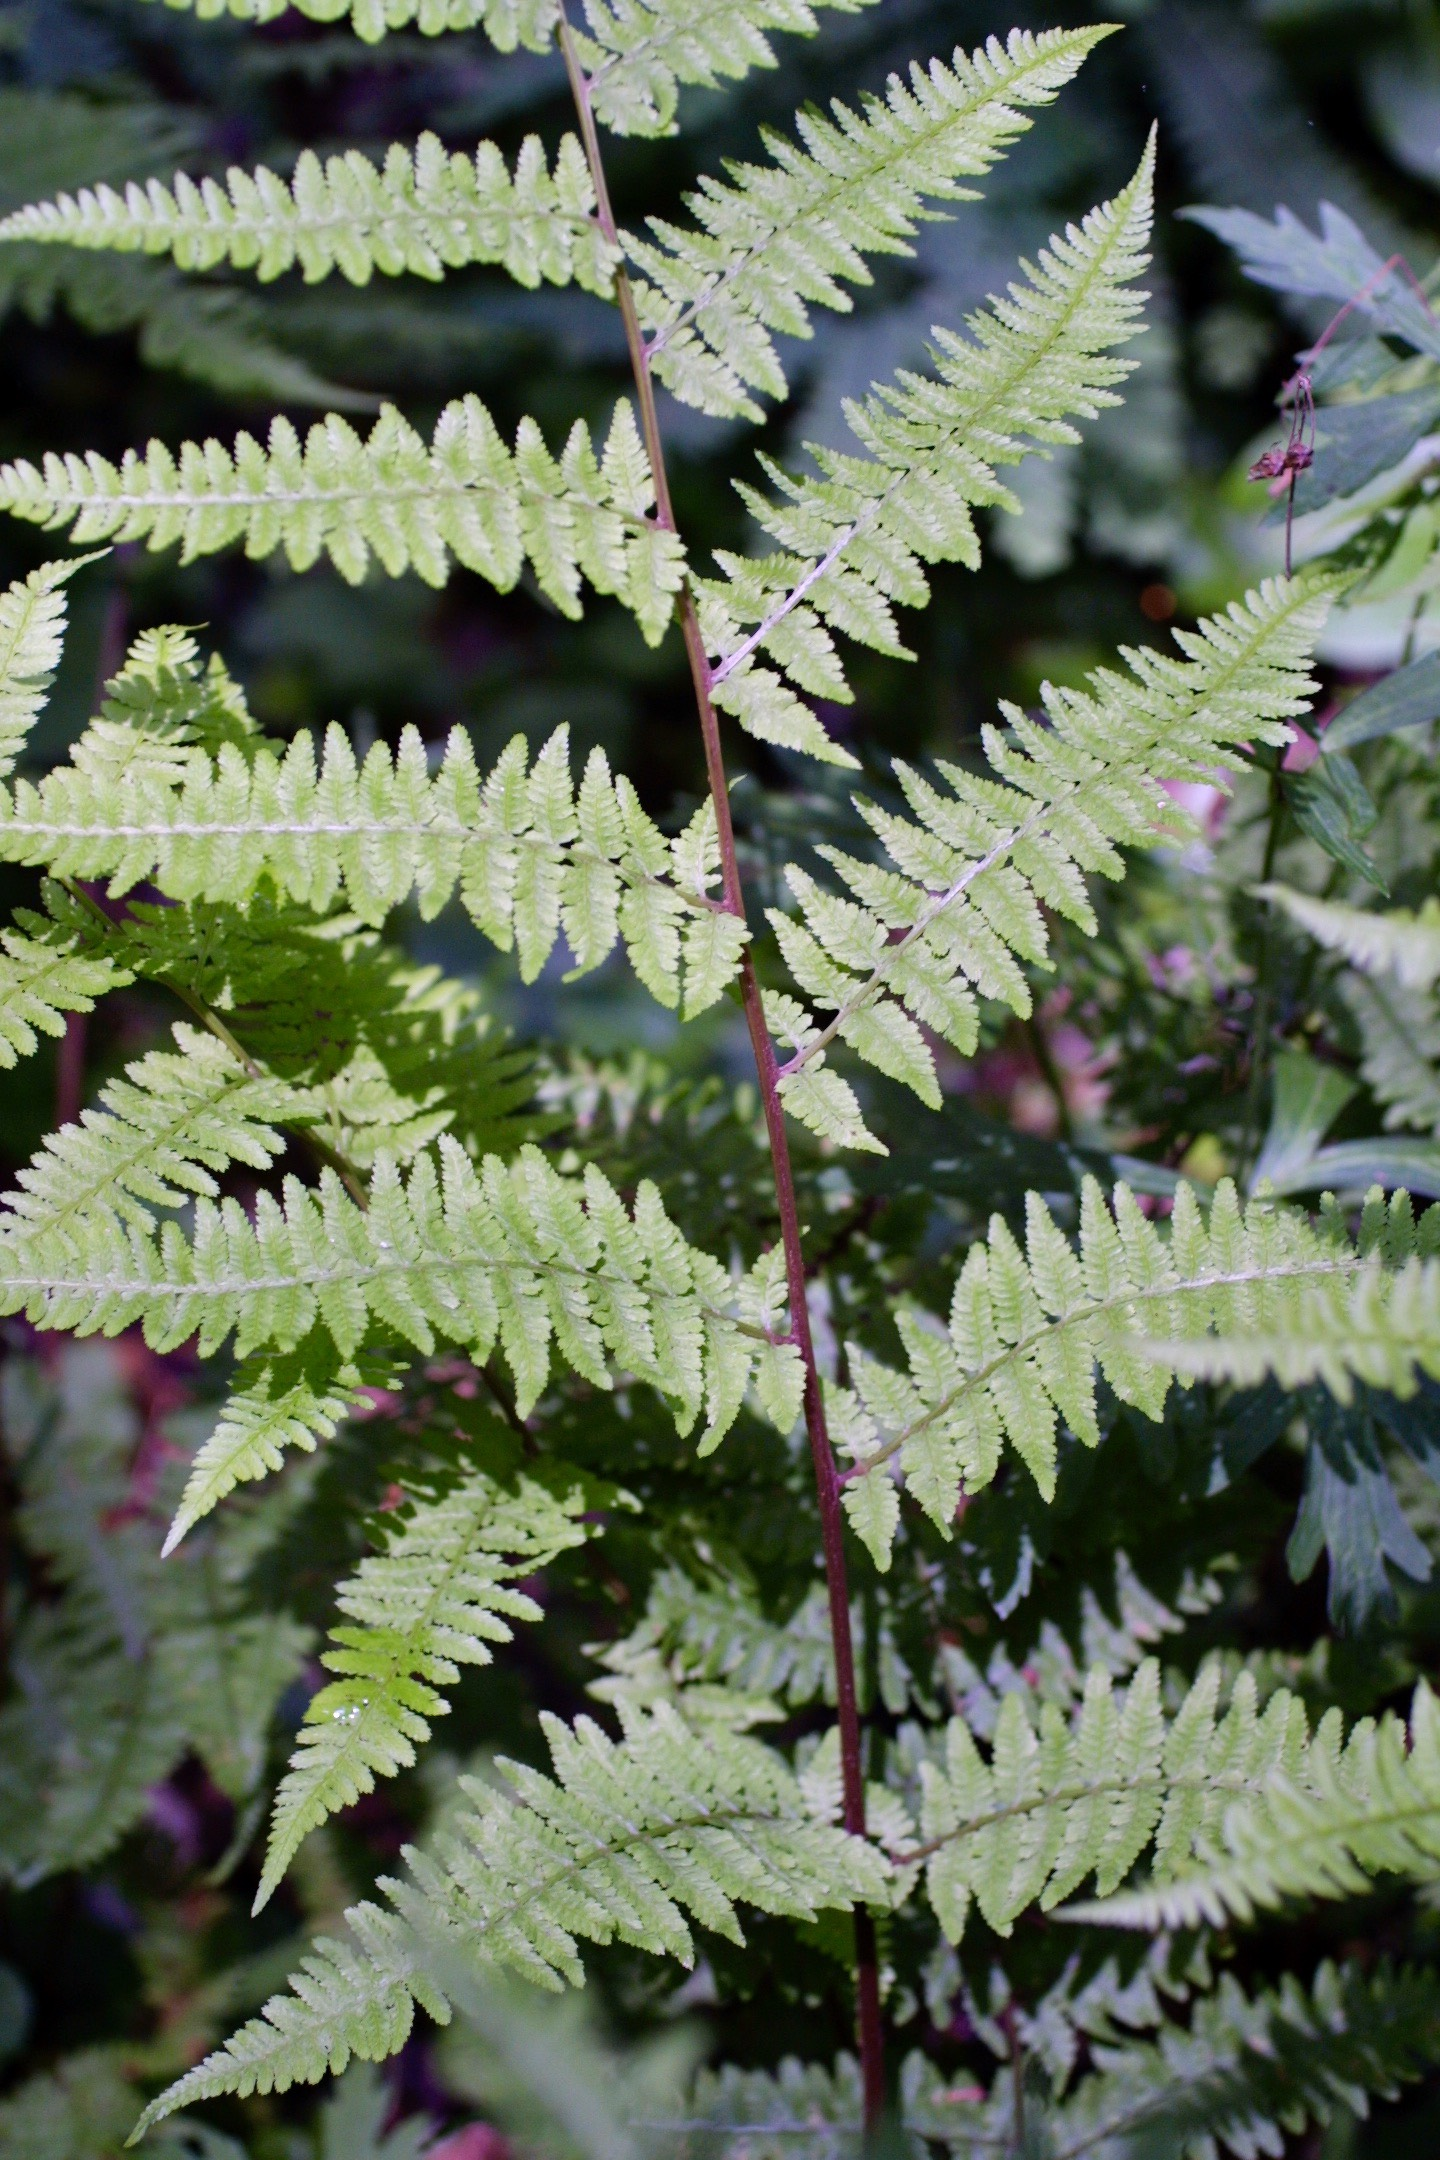 The Scientific Name is Athyrium asplenioides [= Athyrium filix-femina var. asplenoides]. You will likely hear them called Southern Lady Fern. This picture shows the Long-pointed pinnae and a reddish stipe are typical of Athyrium asplenioides [= Athyrium filix-femina var. asplenoides]